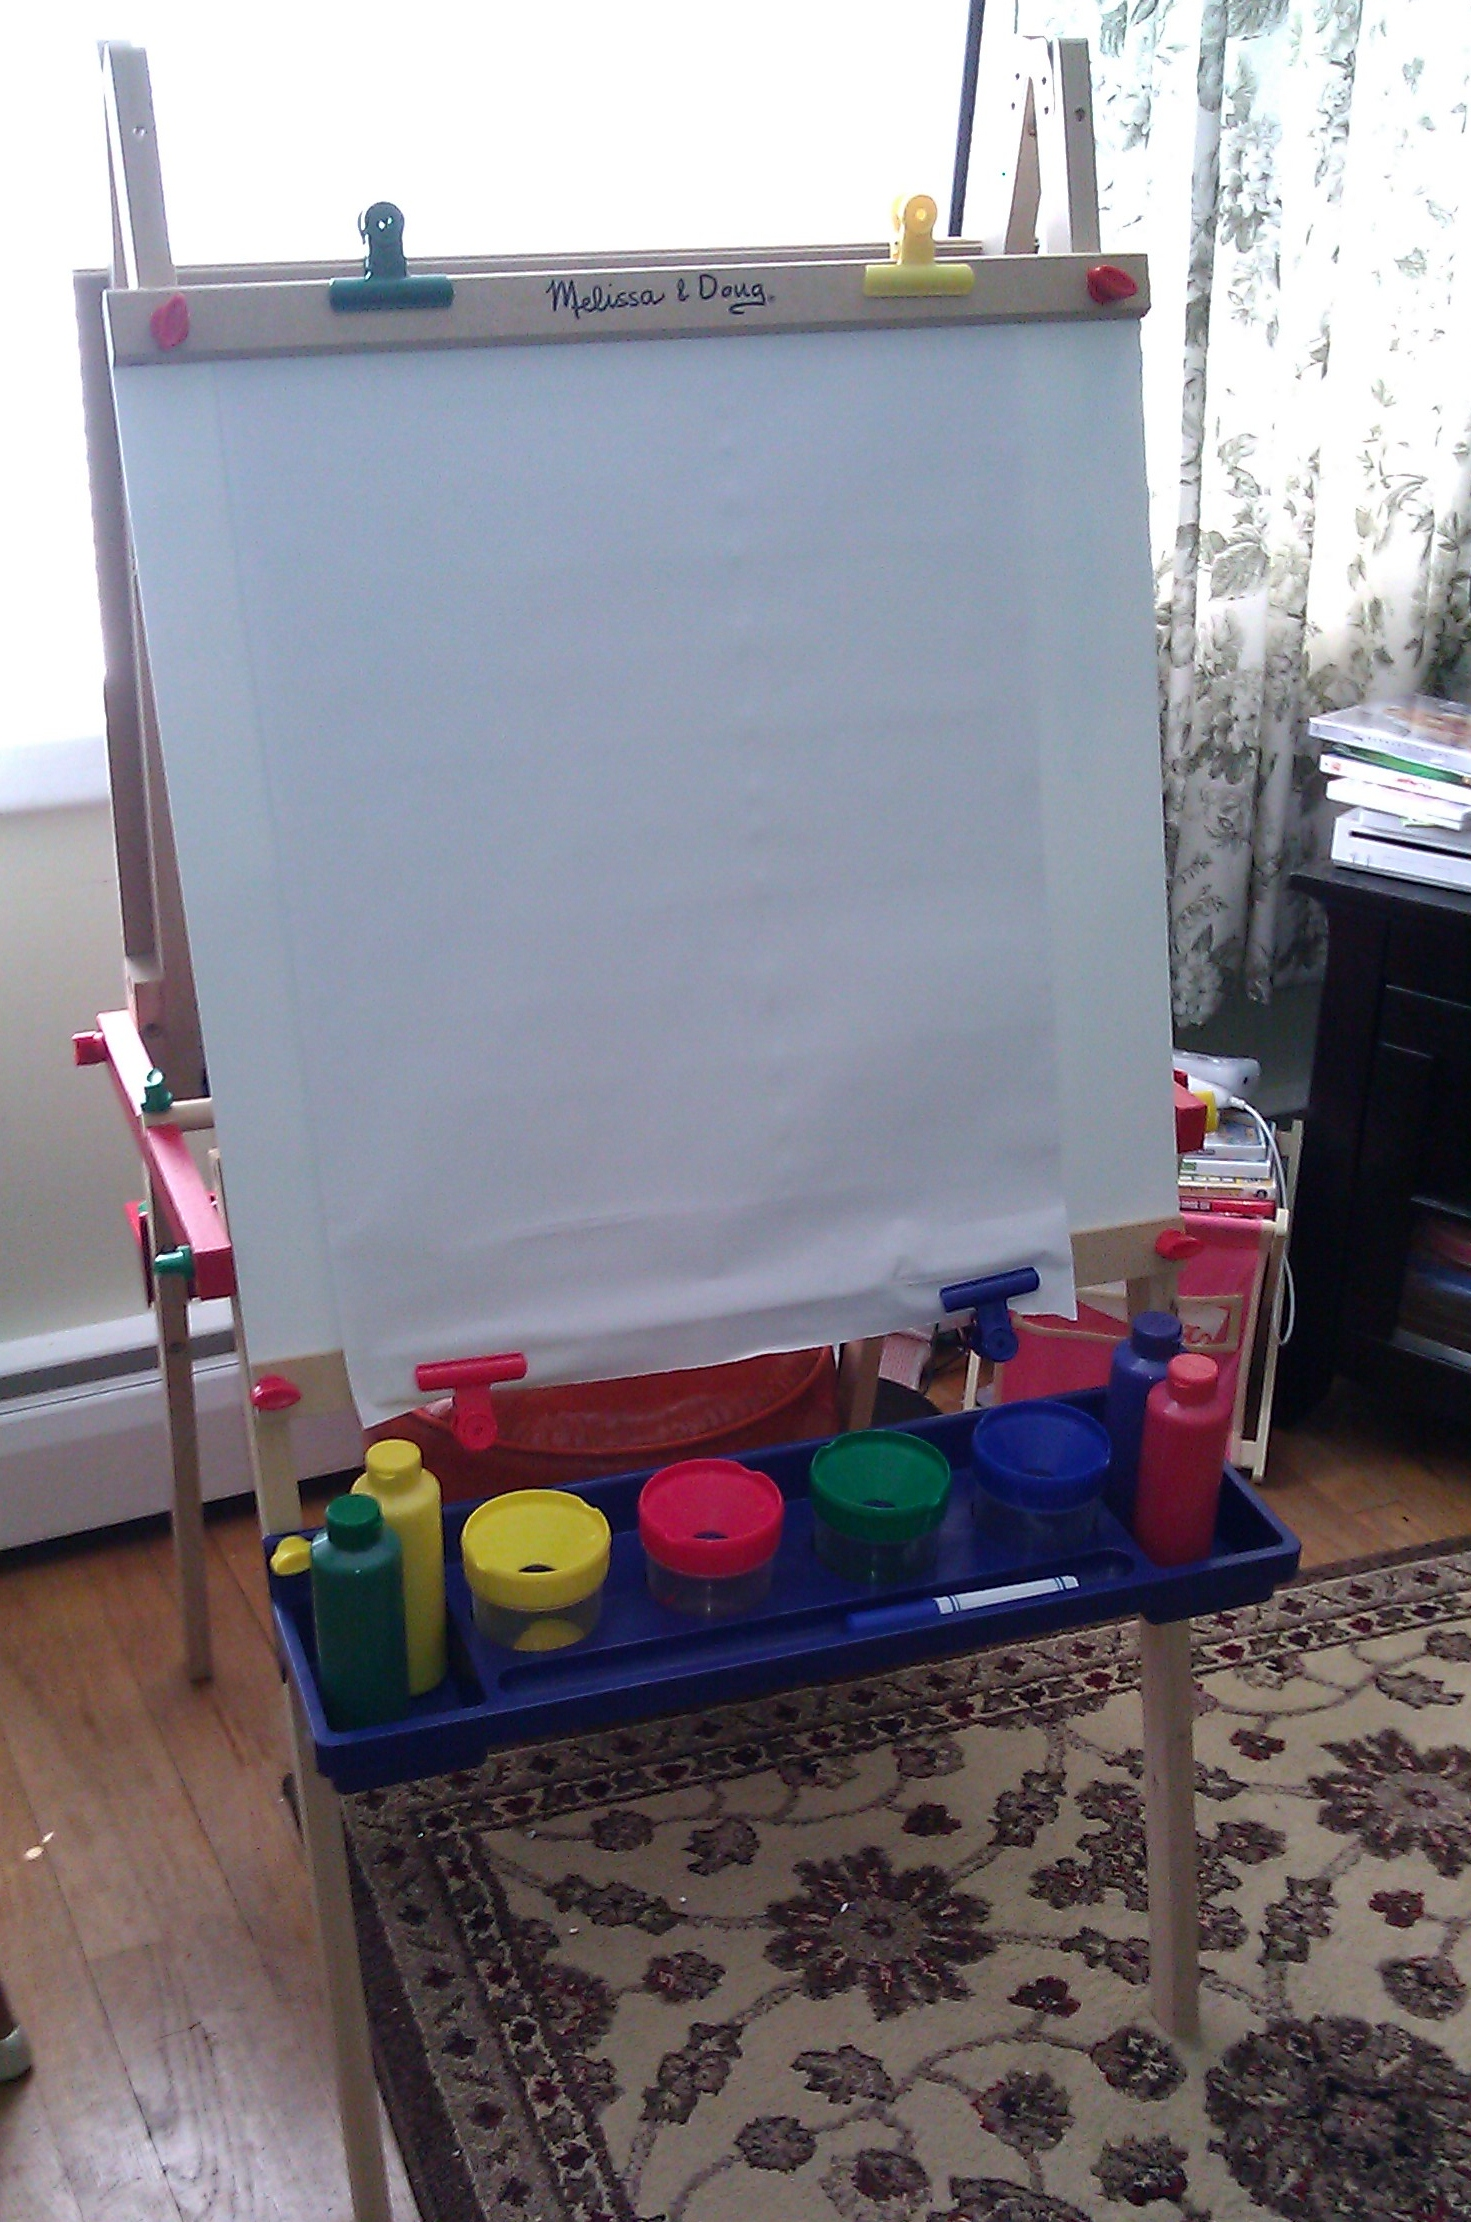 Melissa Doug Easel And Supply Set Review Giveaway Ended Koupon